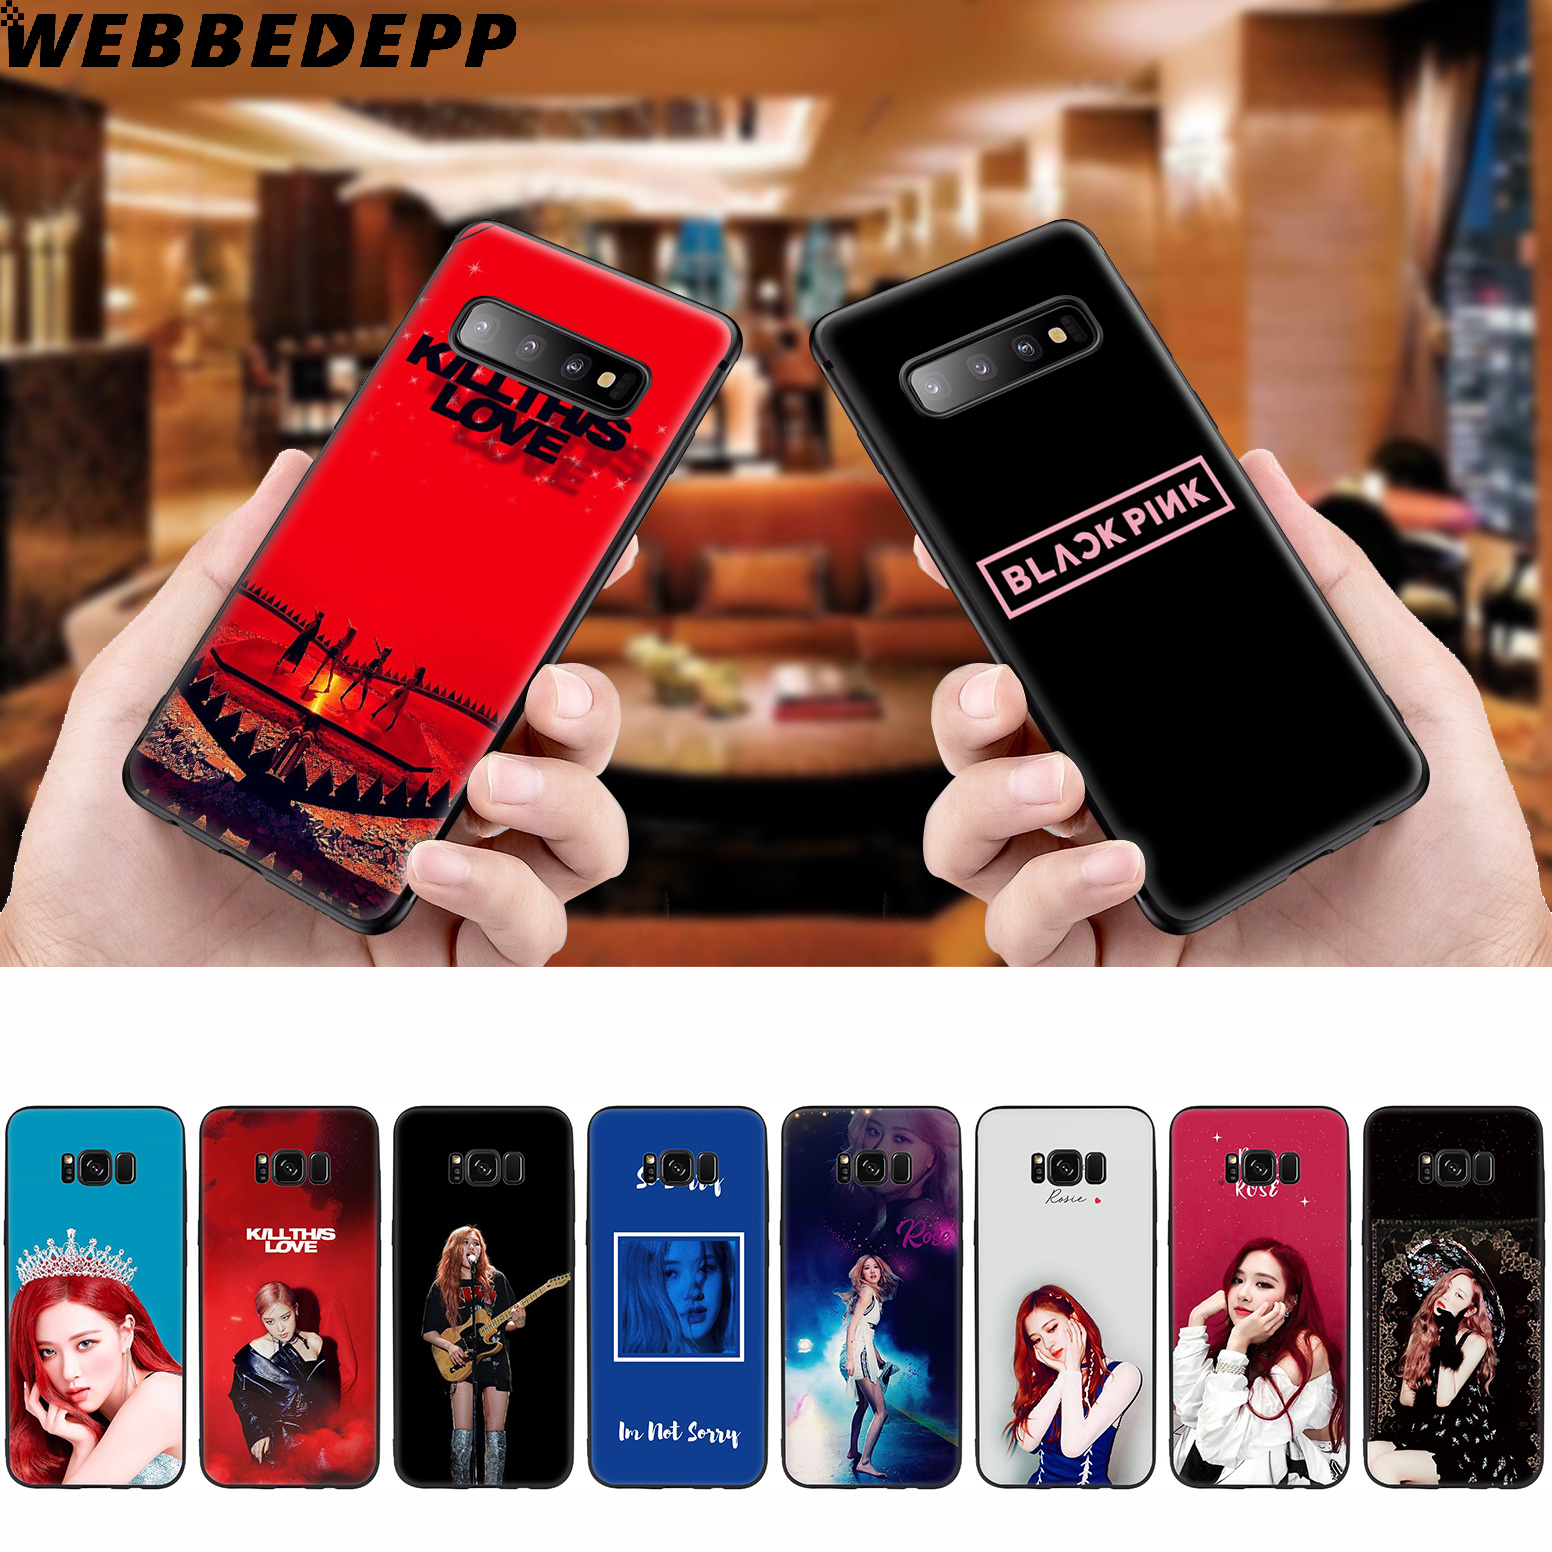 WEBBEDEPP Blackpink Rose <font><b>Kpop</b></font> Soft Case for <font><b>Samsung</b></font> Galaxy S10 S10e S9 S8 <font><b>Plus</b></font> S7 S6 Edge S9 <font><b>Plus</b></font> & <font><b>J6</b></font> 2018 Note 10 <font><b>Plus</b></font> 9 8 image